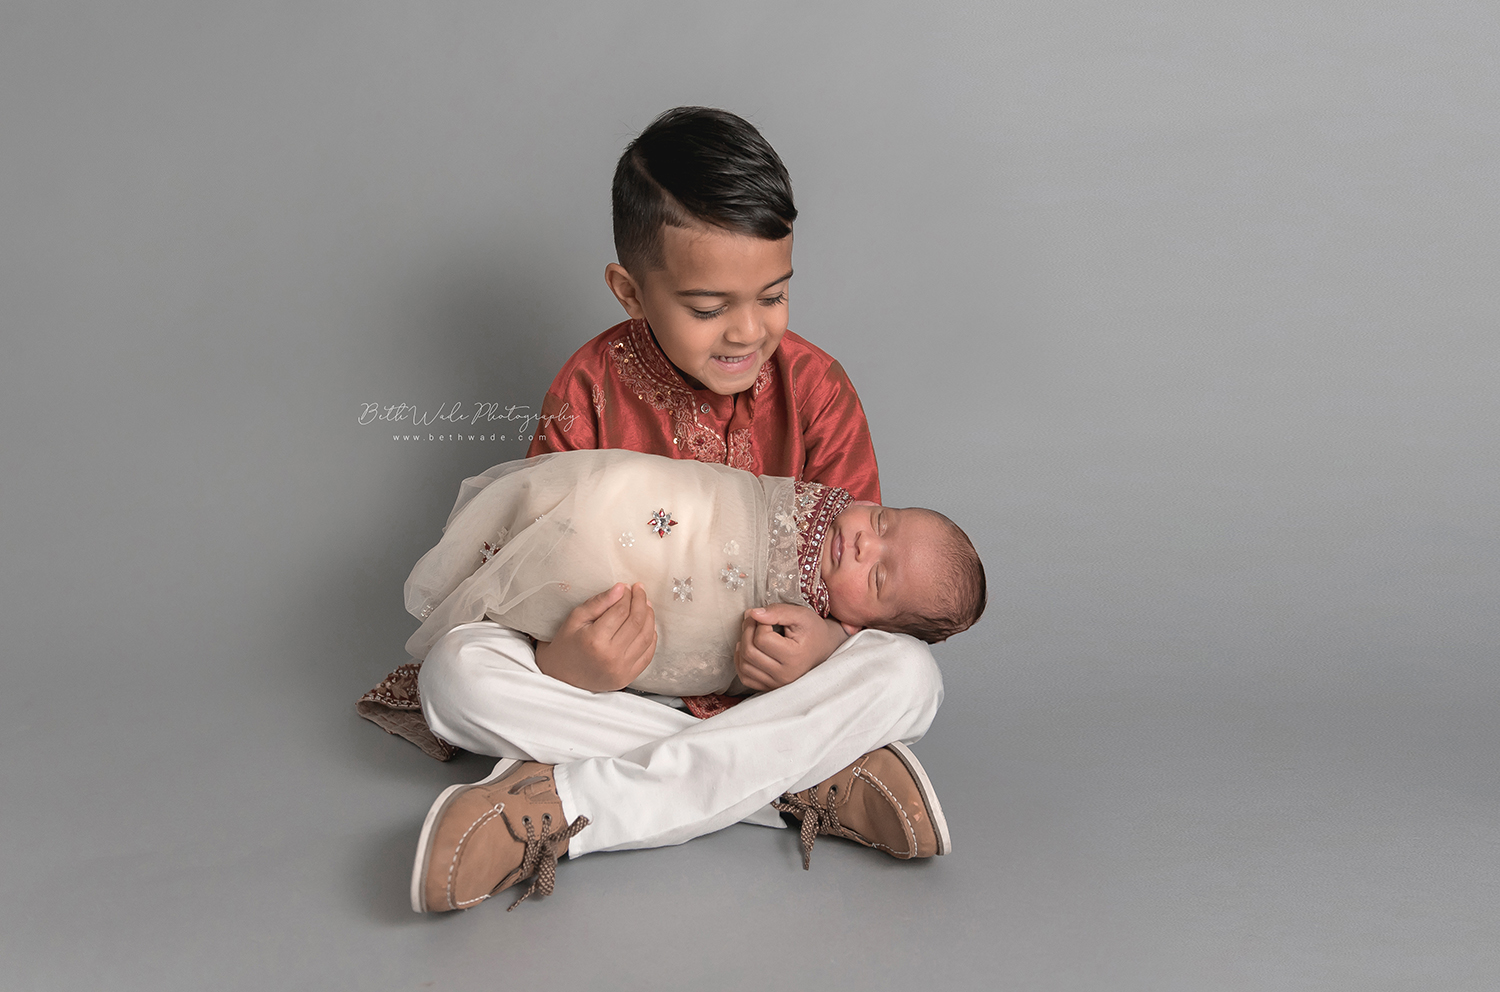 baby brother makes 4 {charlotte new born photography}